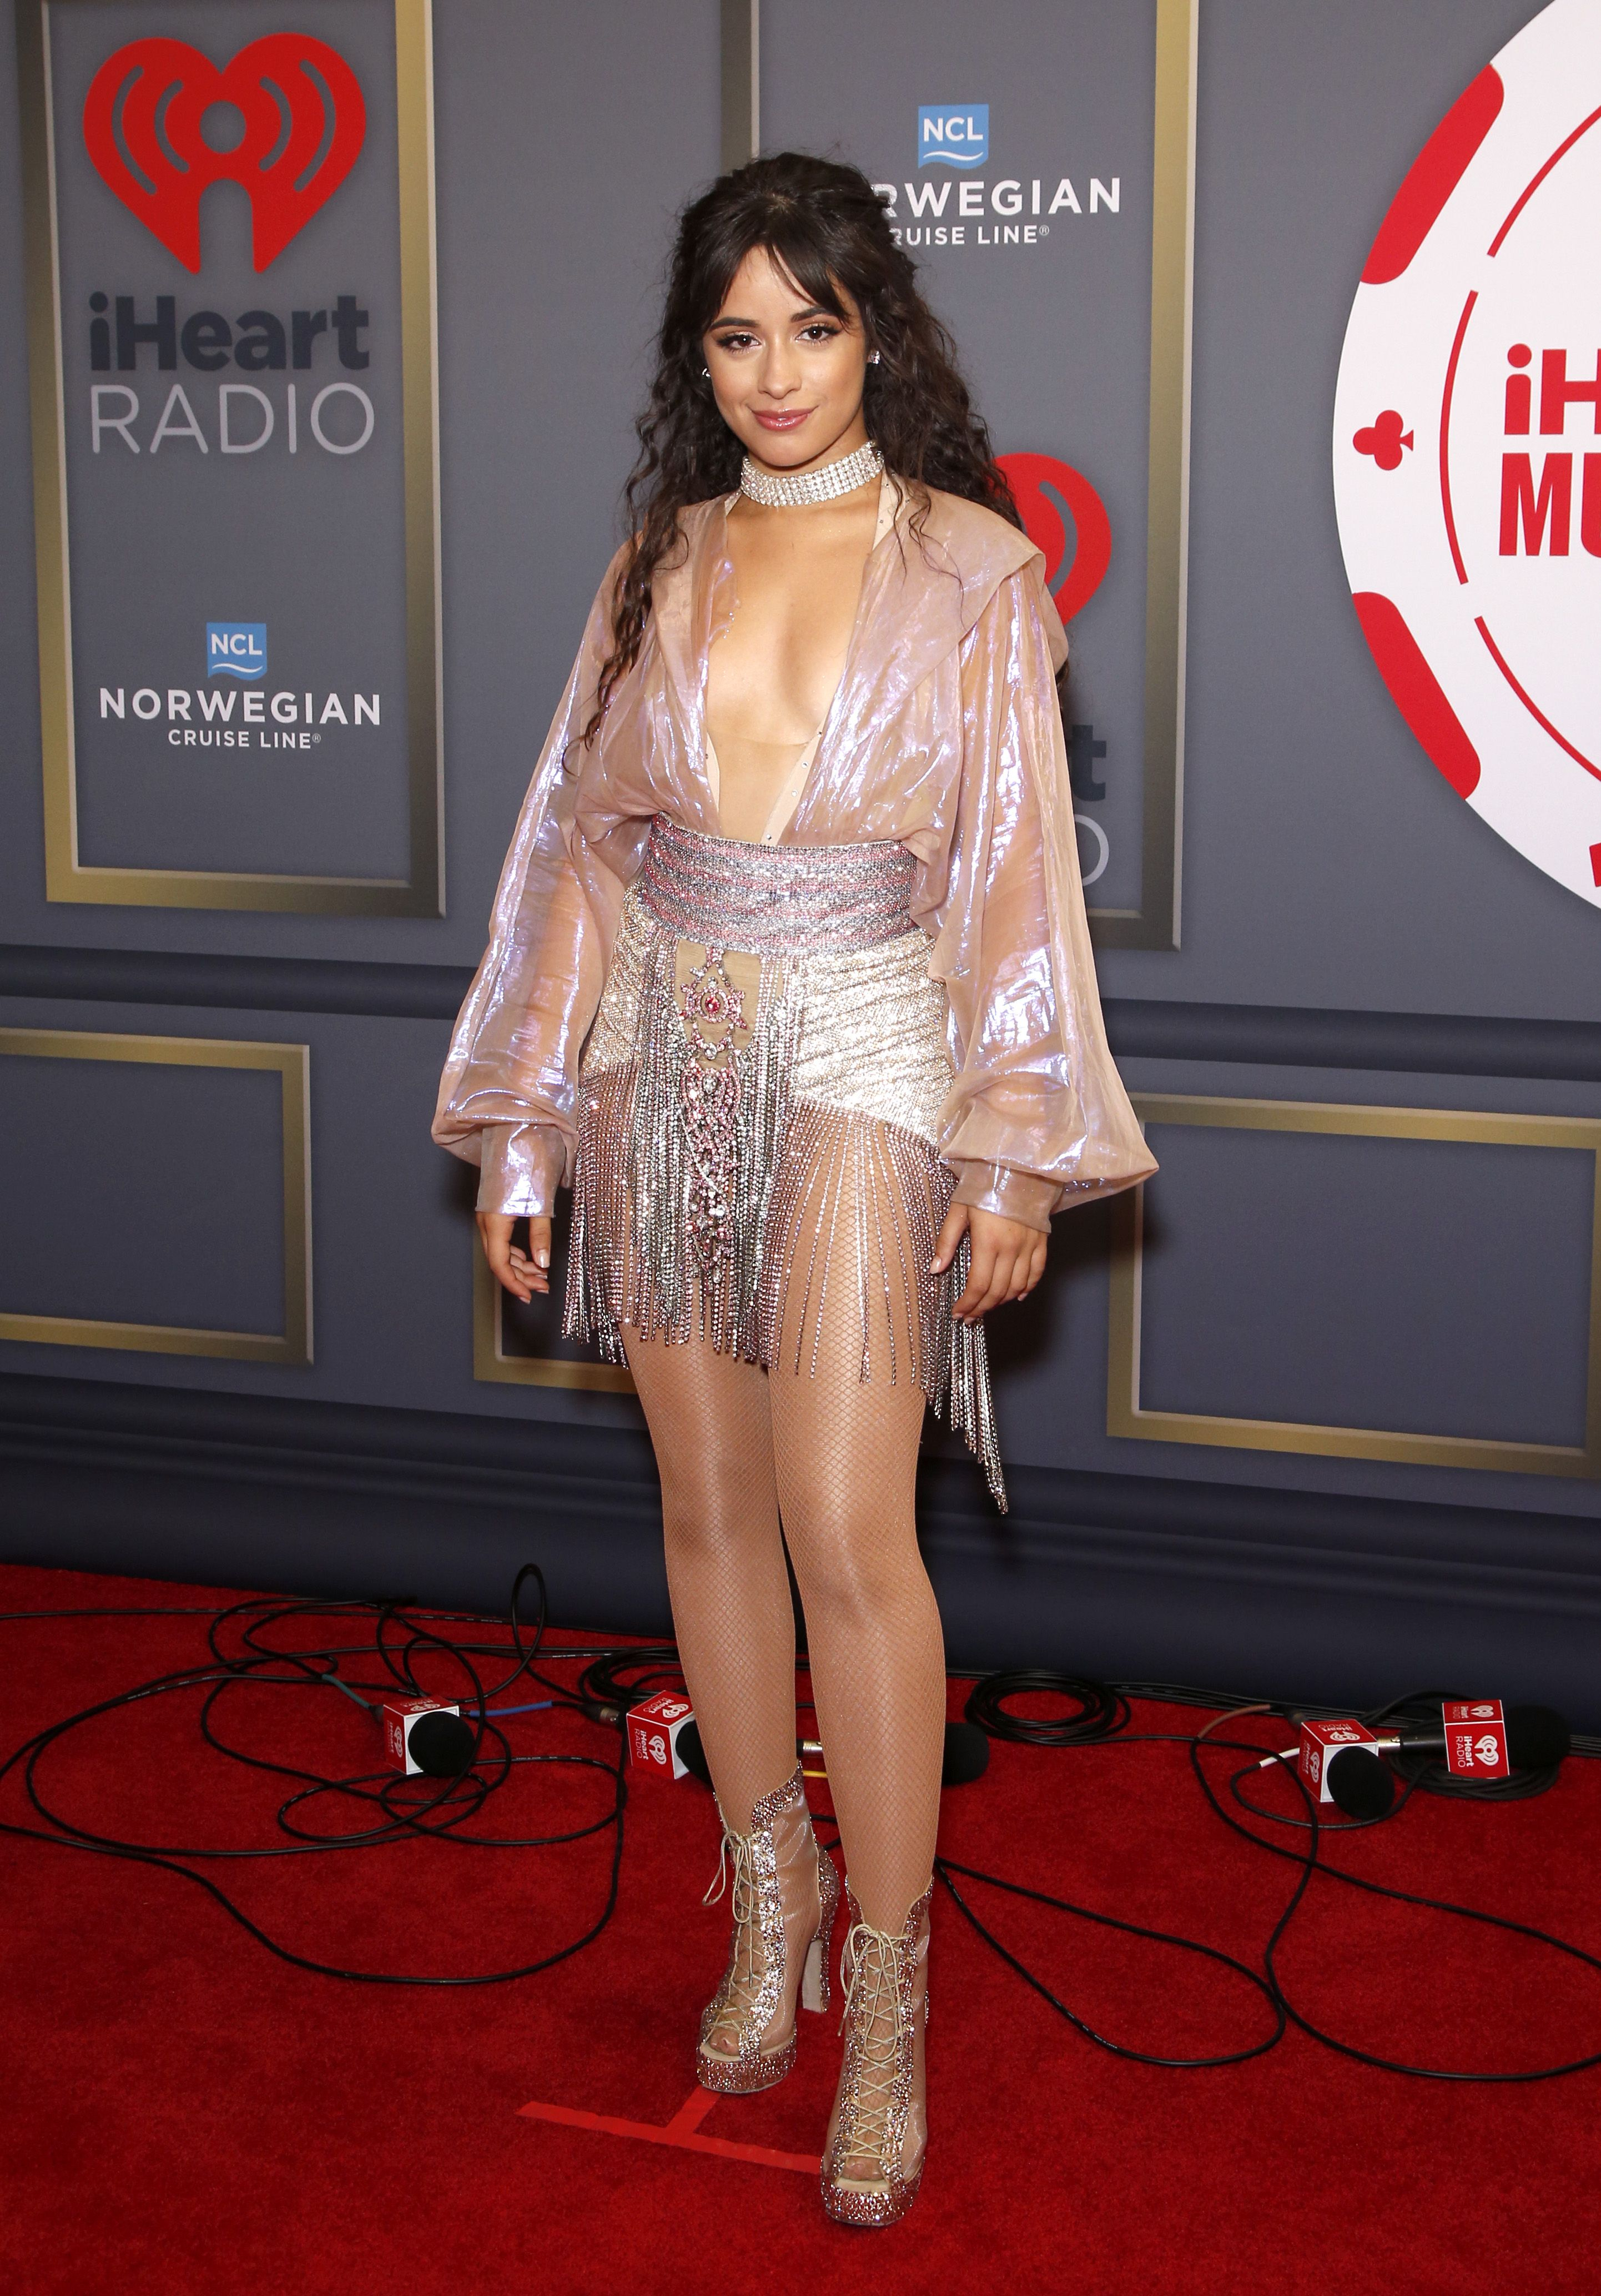 Camila Cabello Sings 'Señorita' Without Shawn Mendes at iHeartRadio Festival